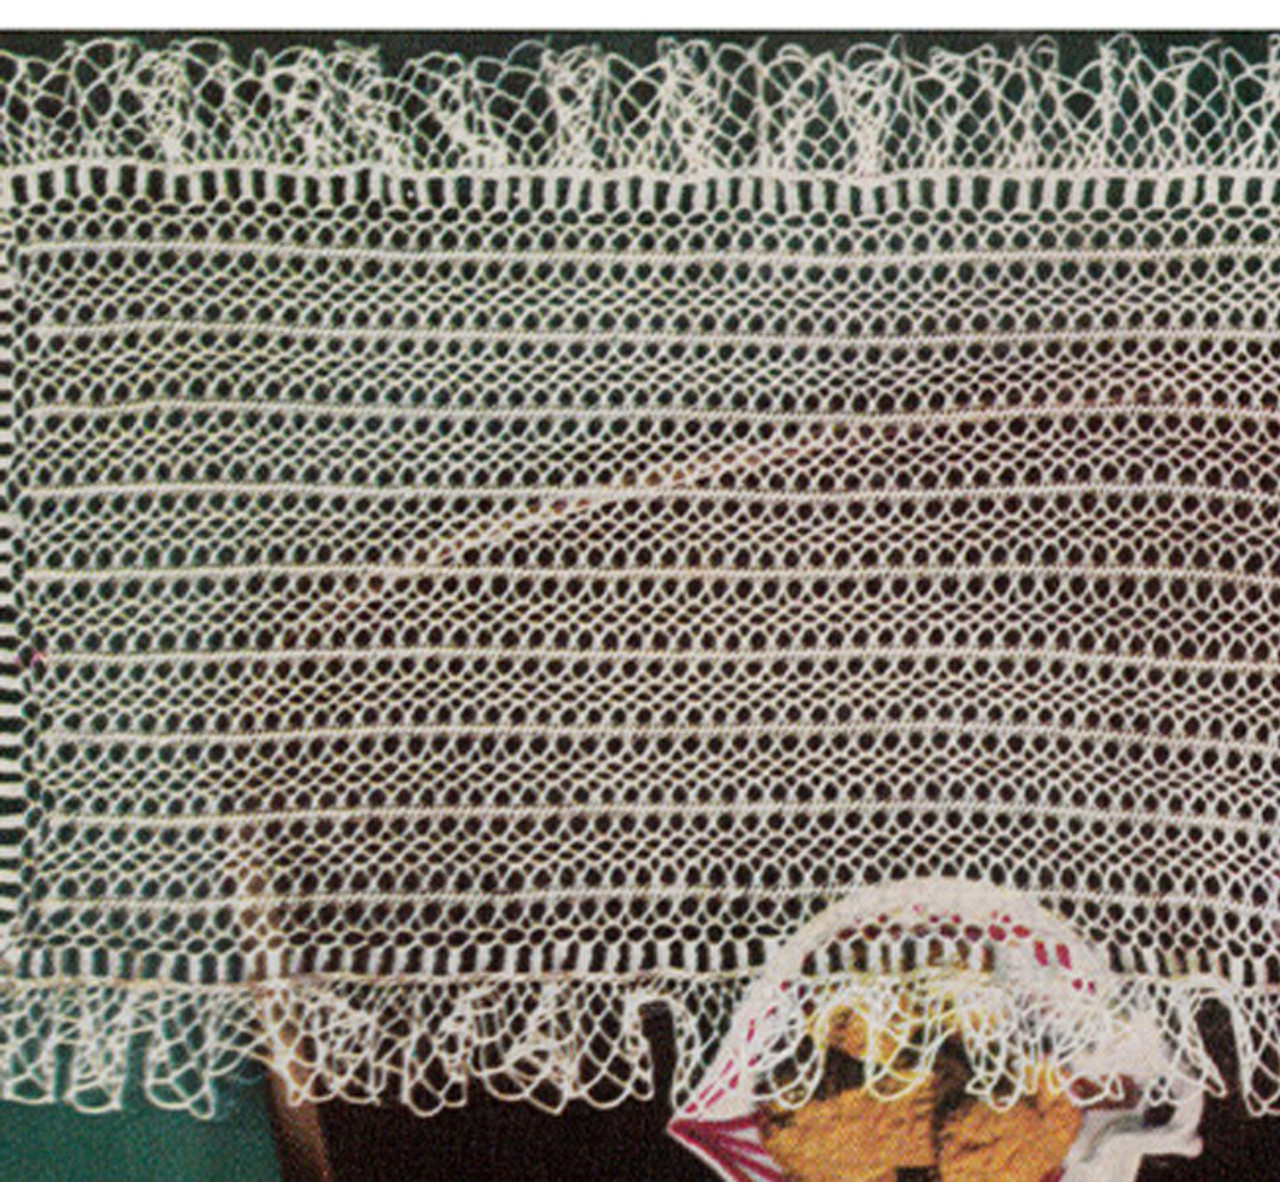 Vintage Hairpin Lace Mat Pattern from Coats & Clark